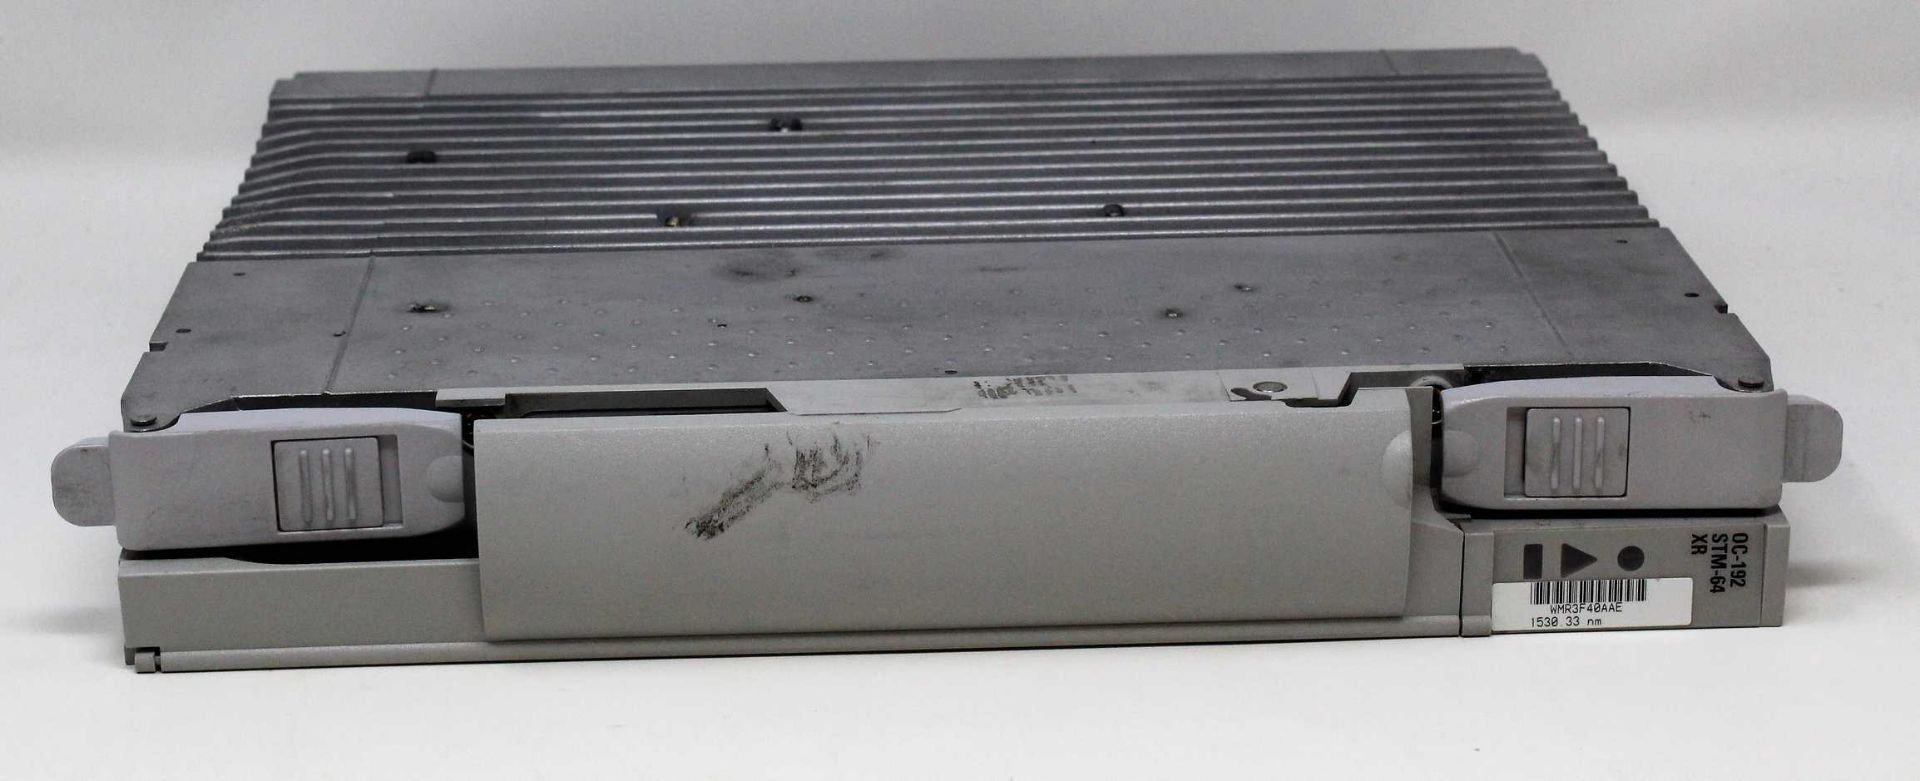 A pre-owned Nortel Optera NTCA04KP WMR3F1AAD 1552 .52NM OC-192 STM-64 XR (Untested, sold as seen).